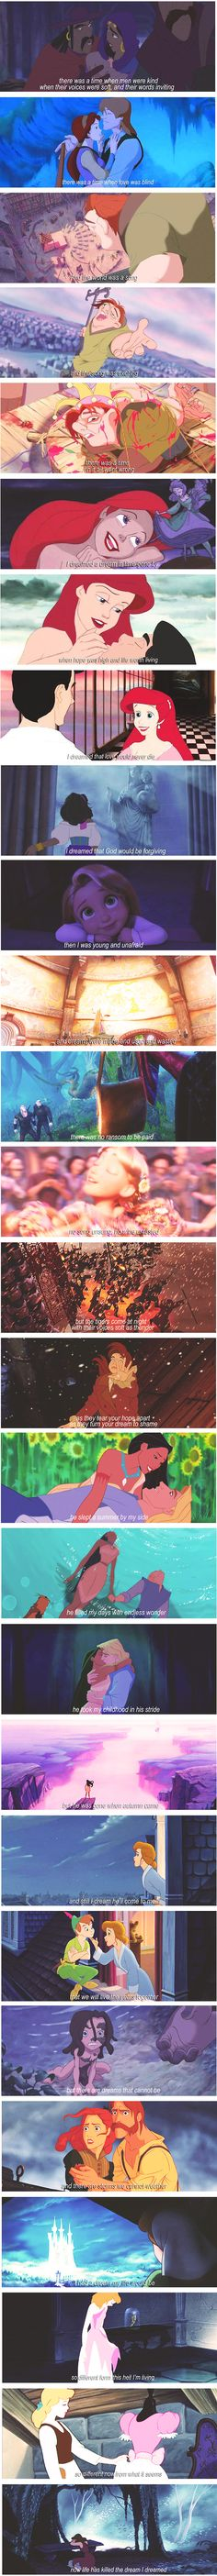 I Dreamed a Dream + Disney. I love this. Minus the fact that ANASTASIA IS NOT A DISNEY PRINCESS.